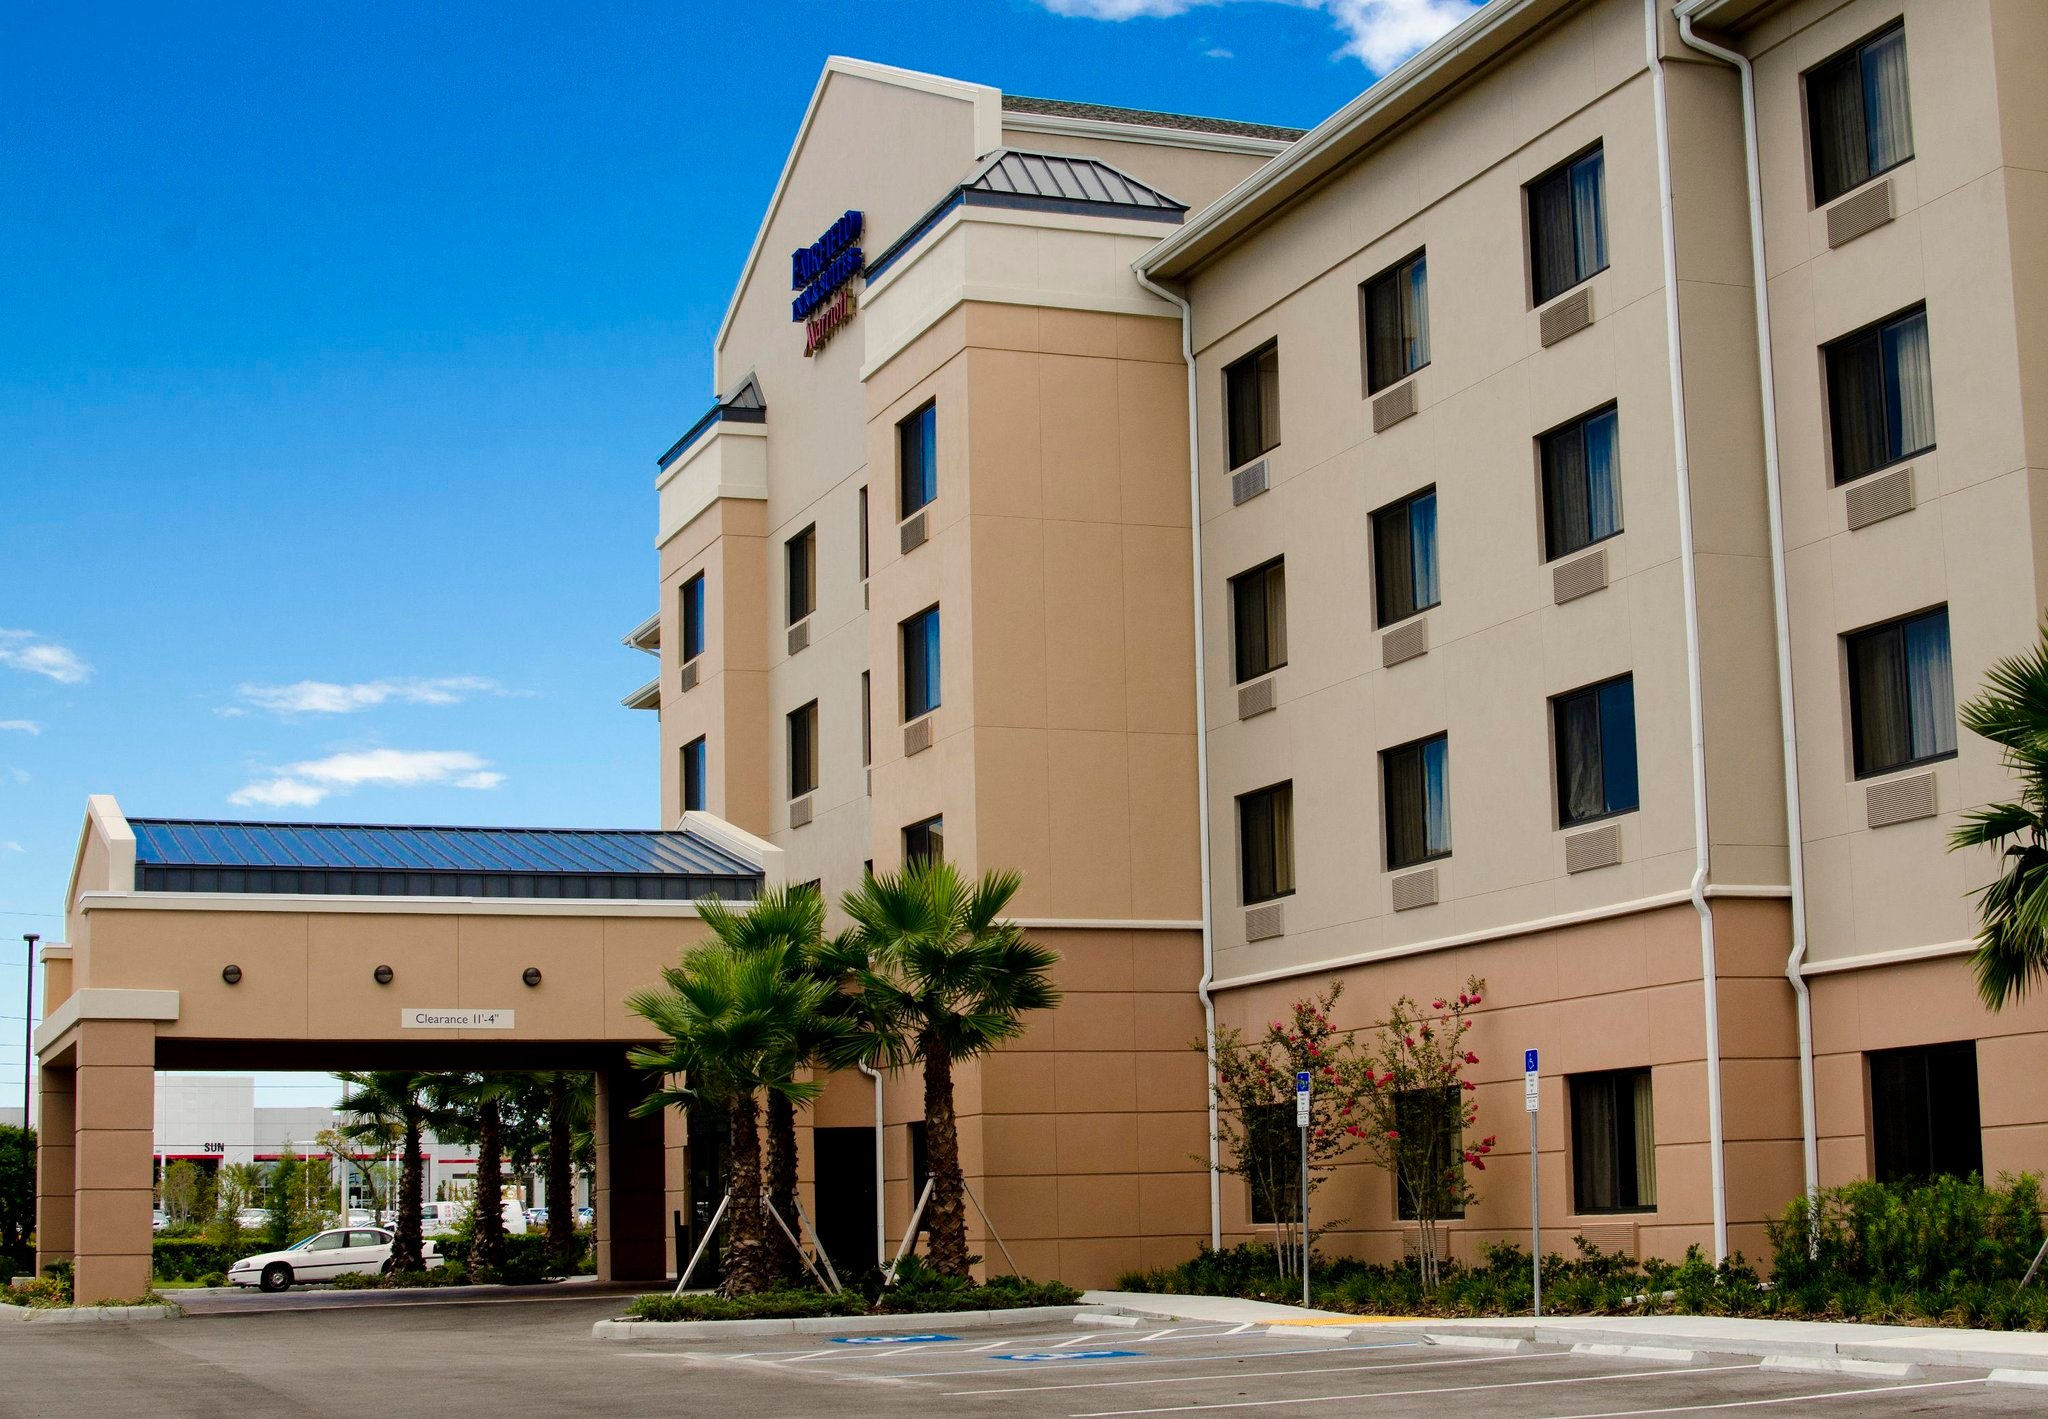 Fairfield Inn & Suites Holiday Tarpon Springs